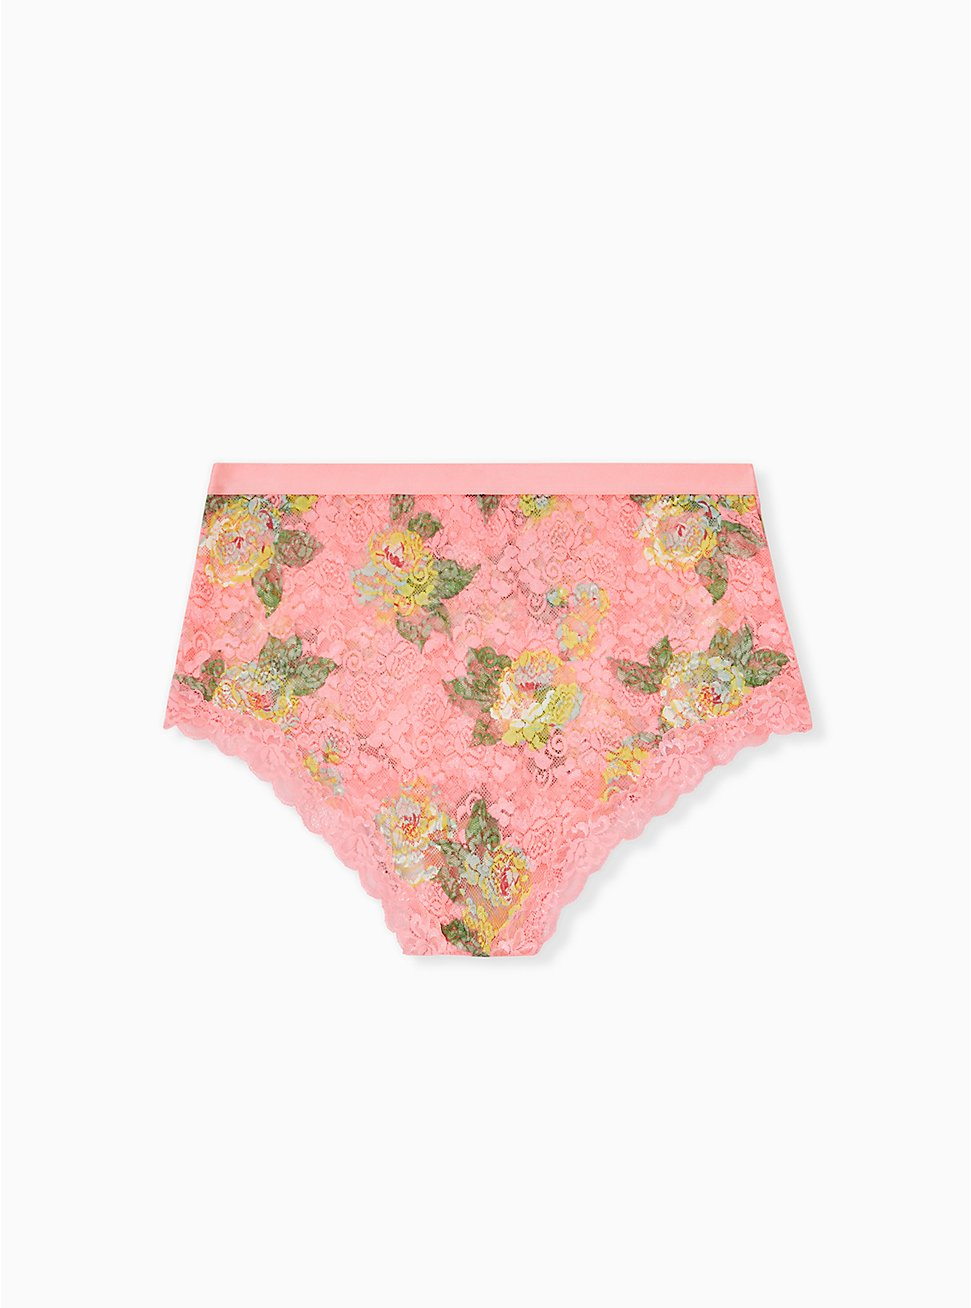 Coral Floral Lace High Waist Panty , SUMMER BLOOM, hi-res